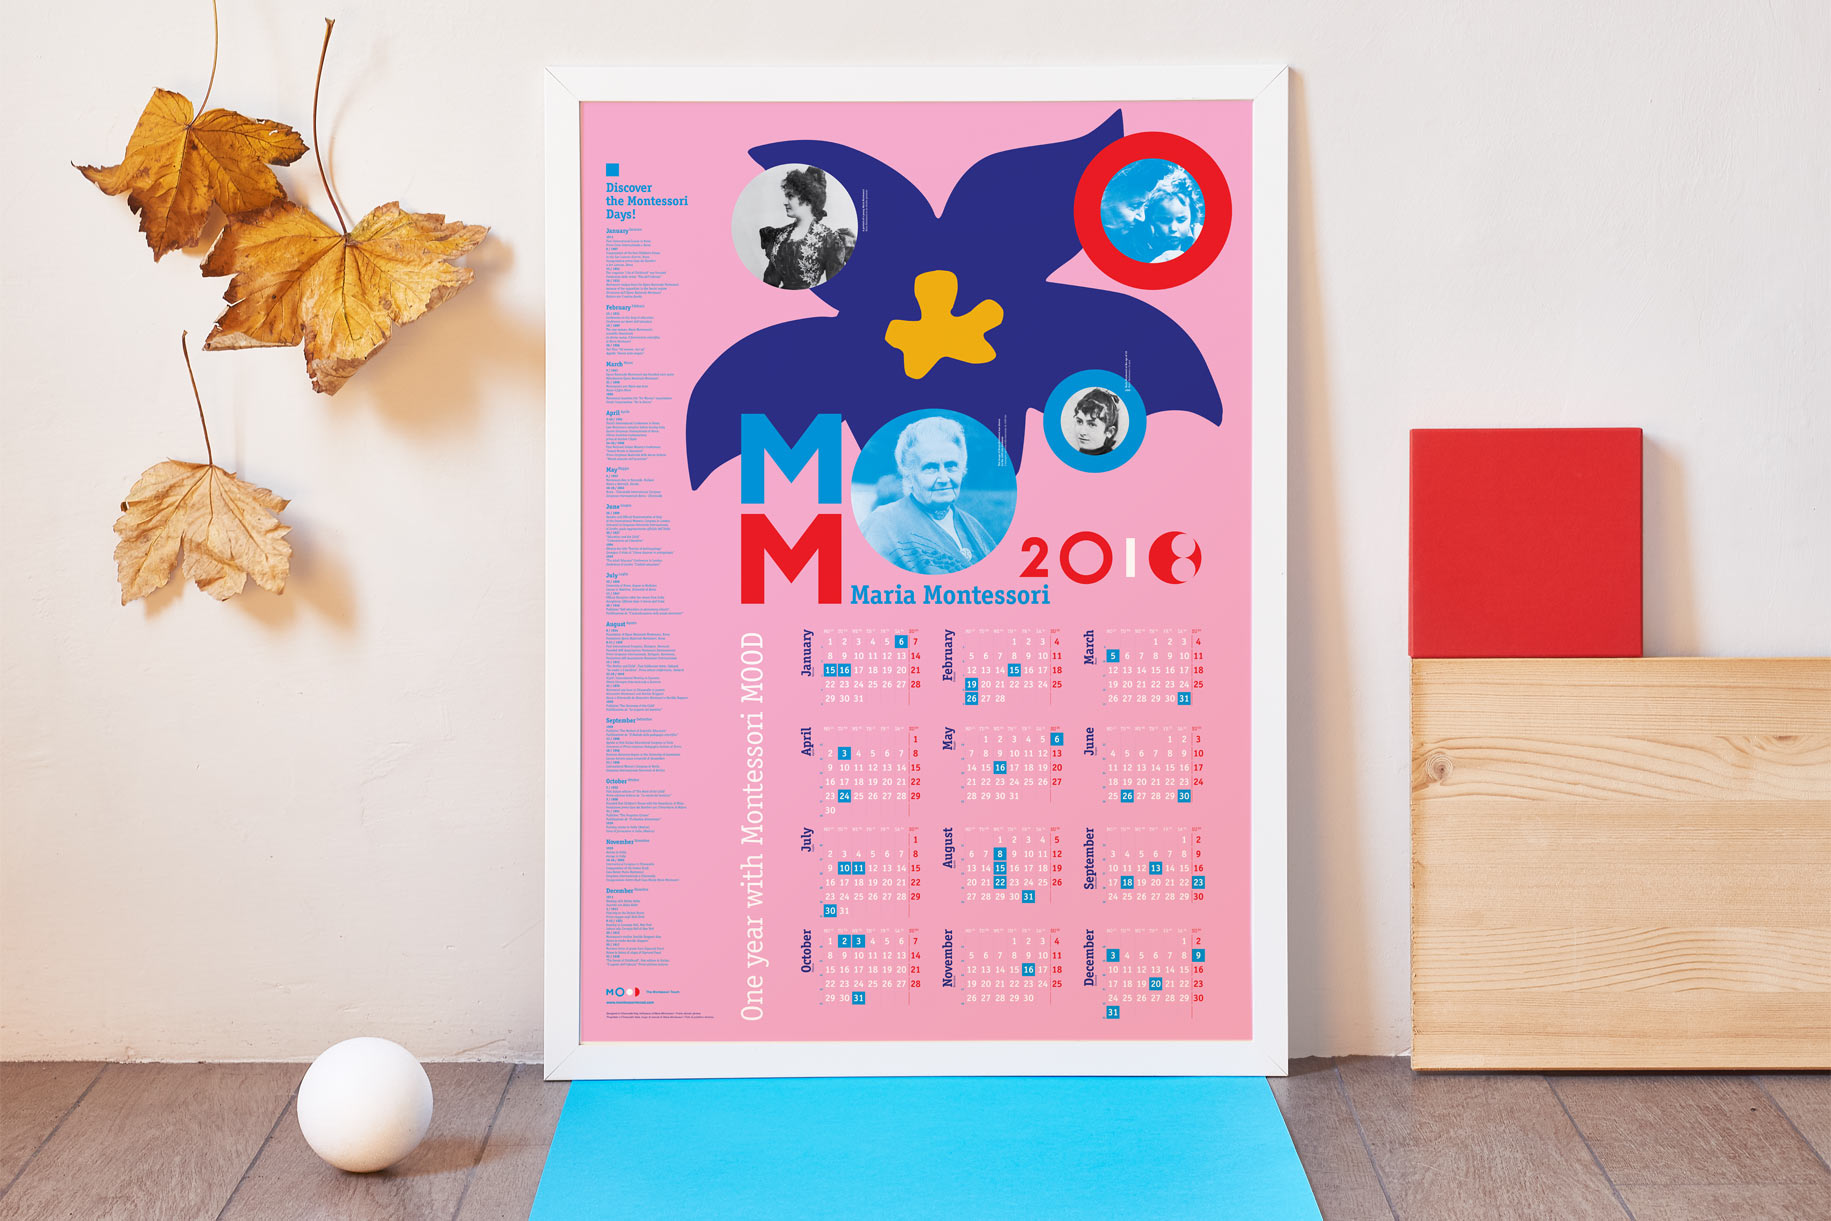 2018 Biographical Montessori poster-calendar